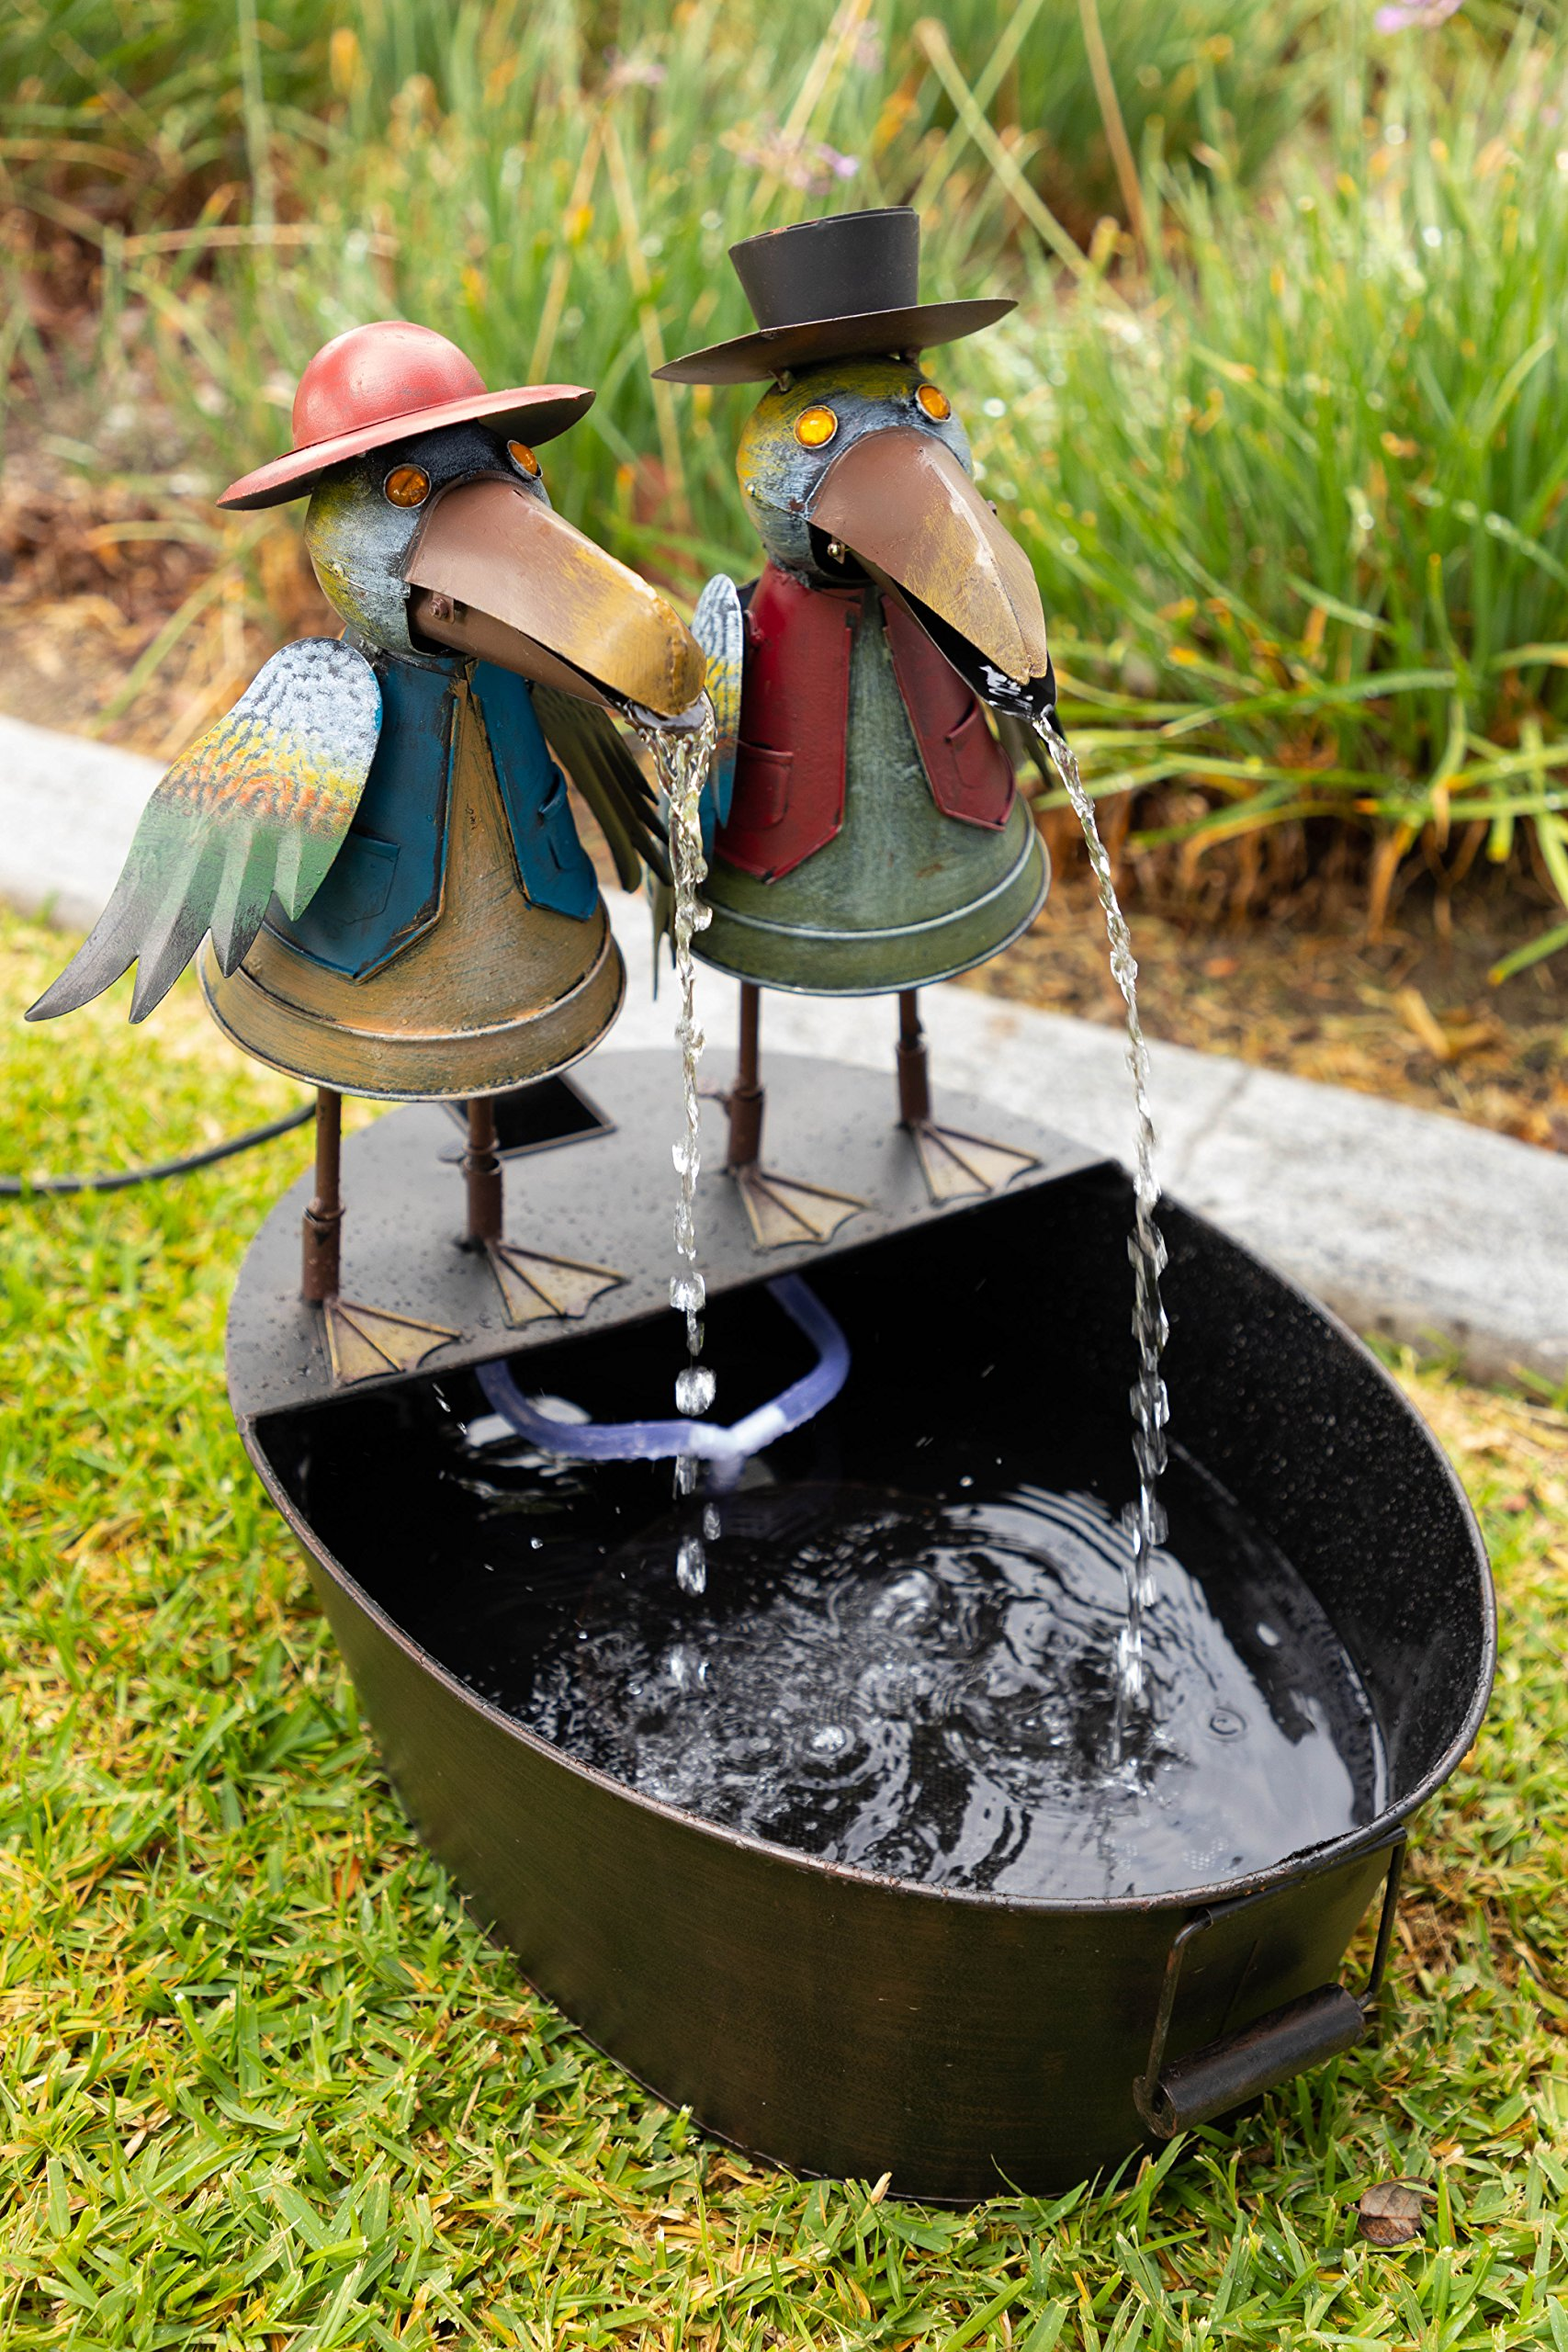 Alpine Corporation NCY298 Metal Crow Fountain